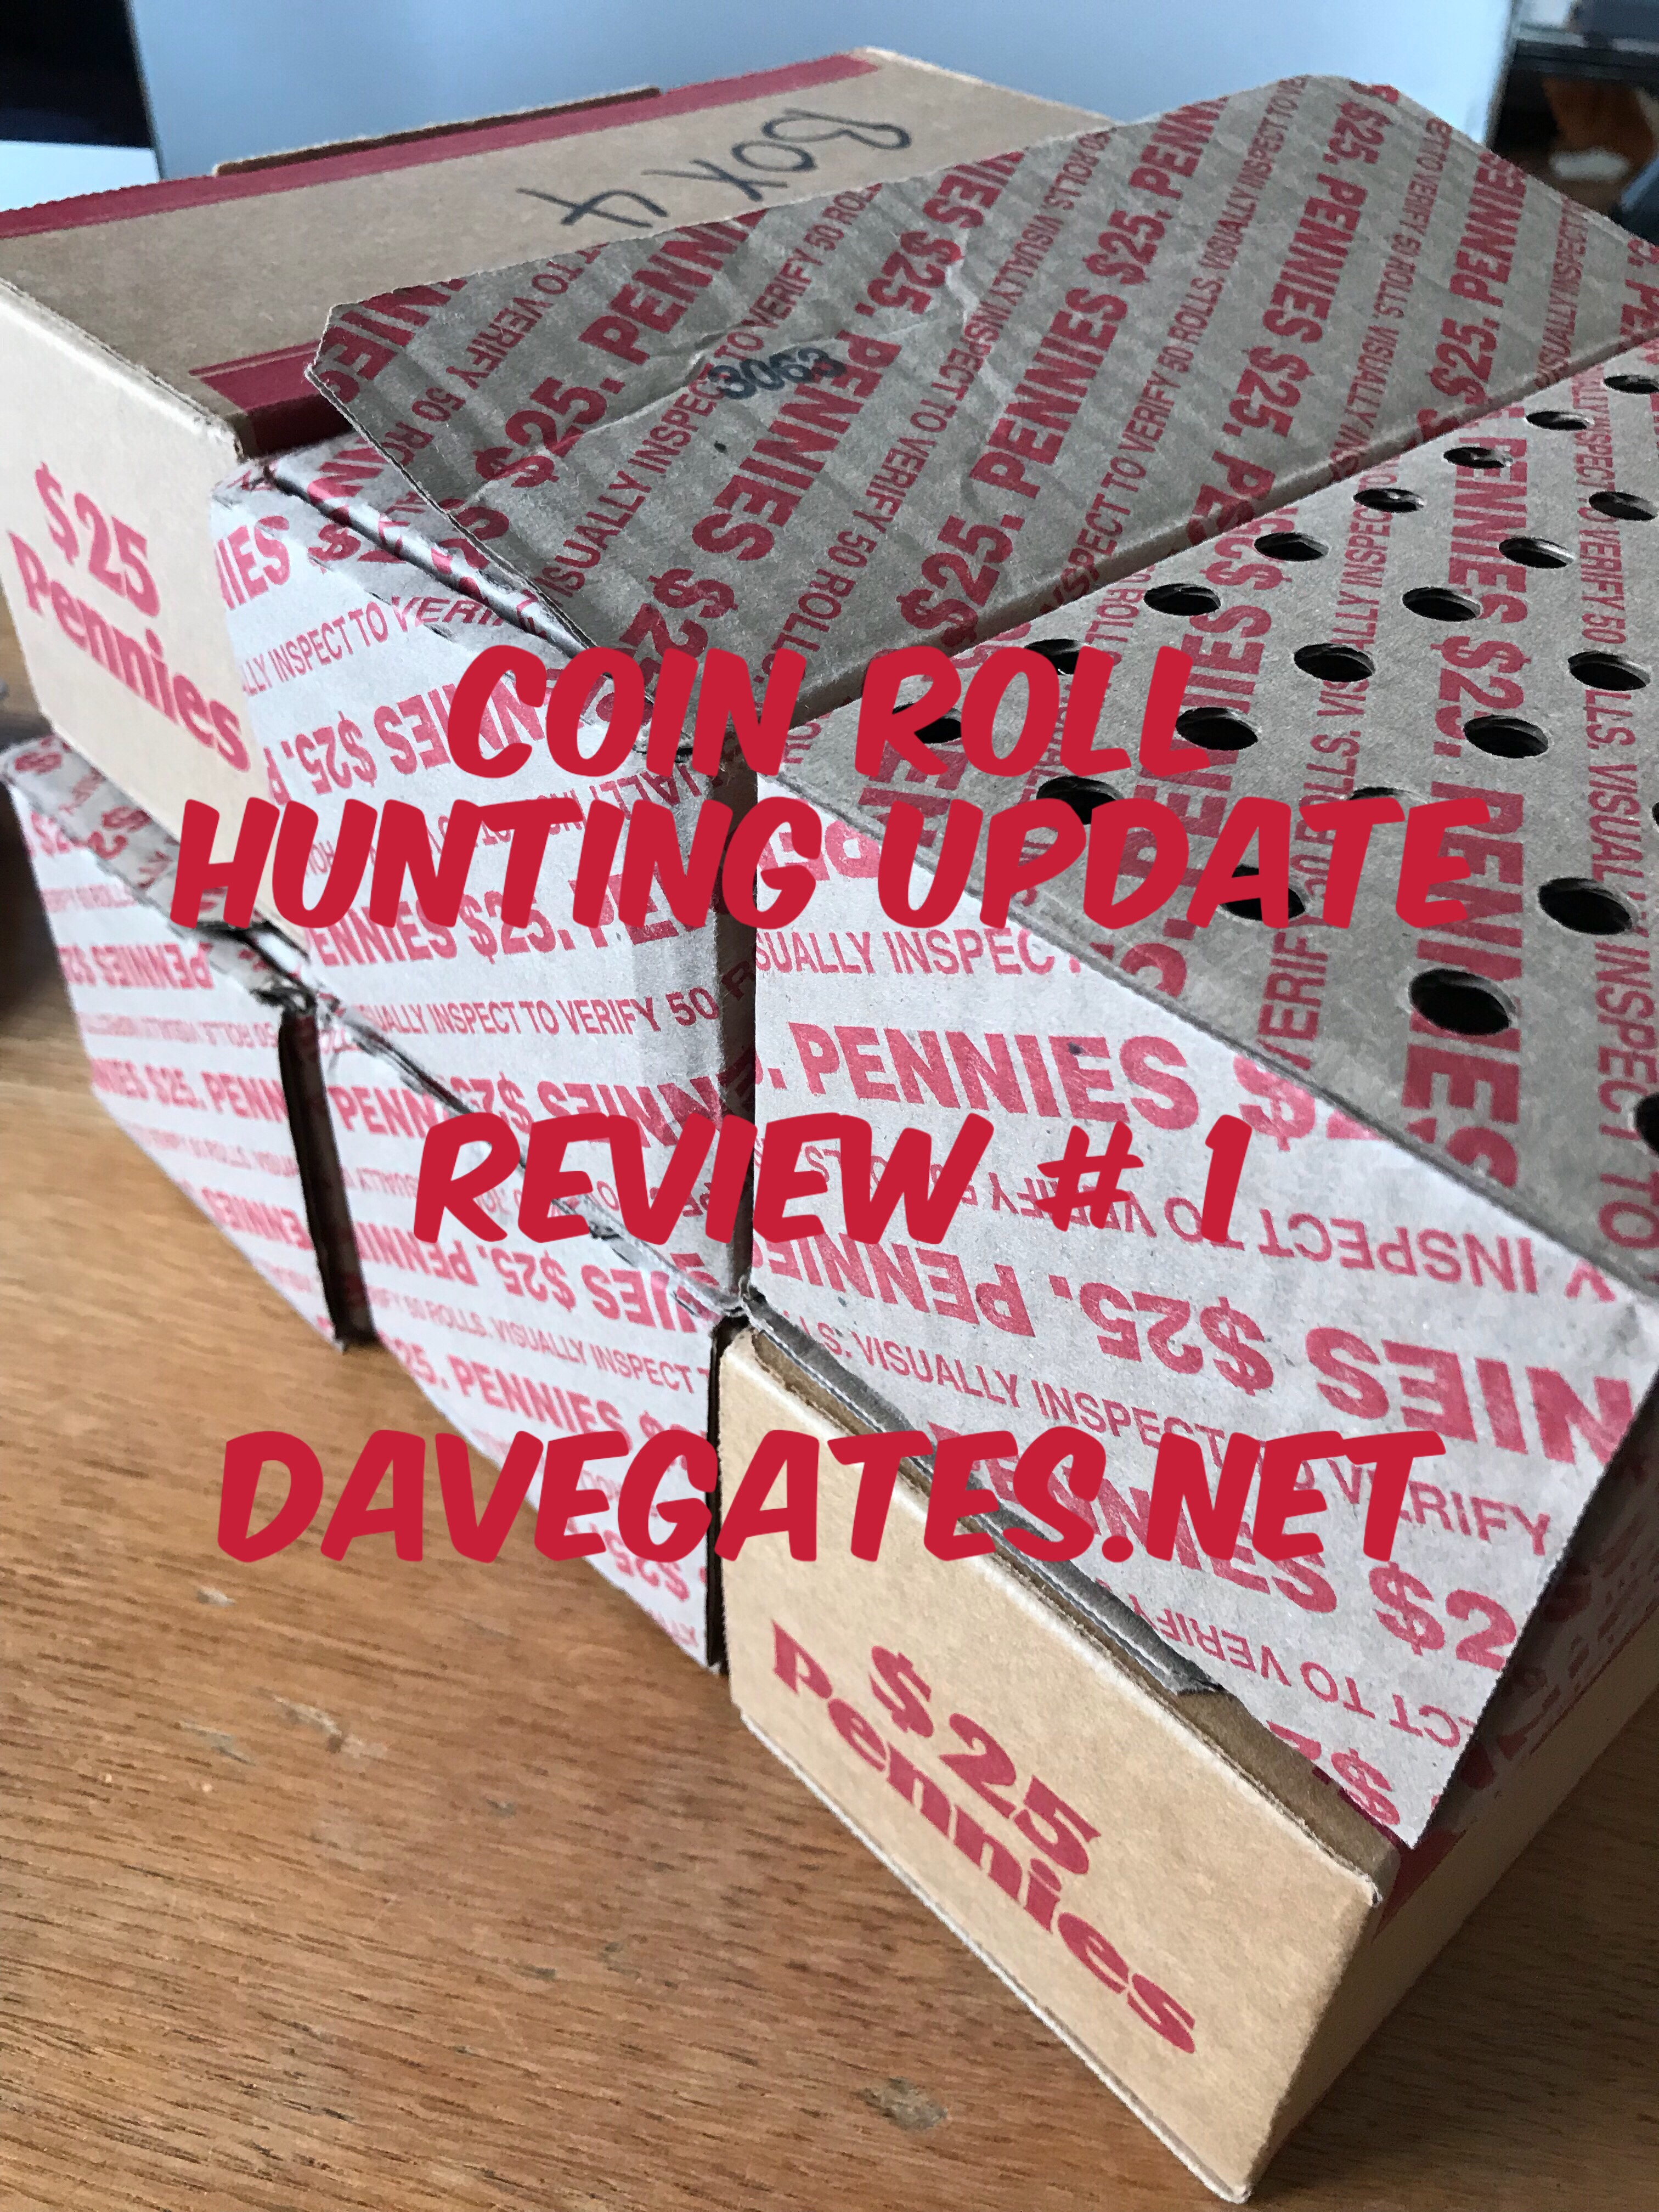 Coin Roll Hunting Pennies Update Review 1 Dave Gates,4 Prong Dryer Cord To 3 Prong